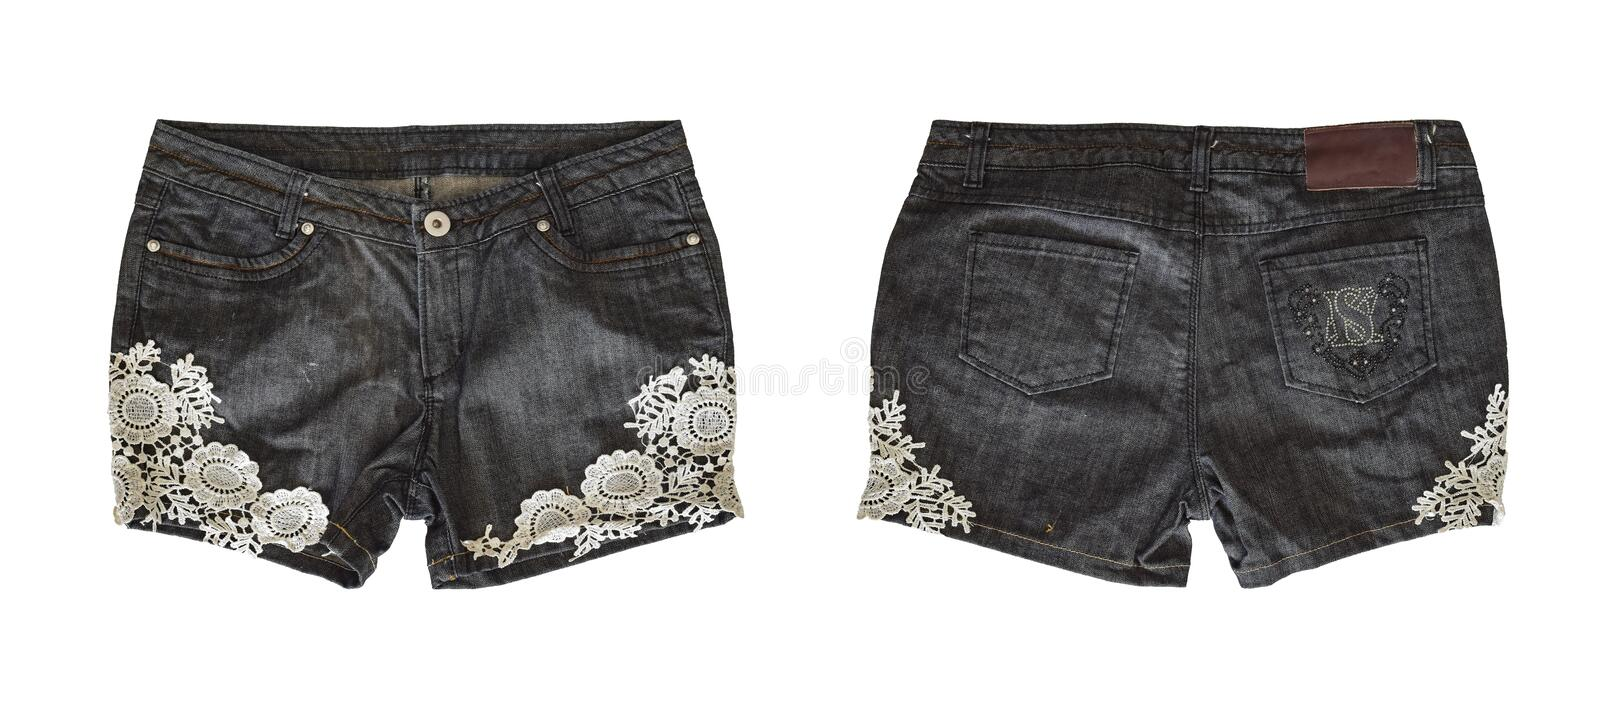 Denim shorts for female stock images